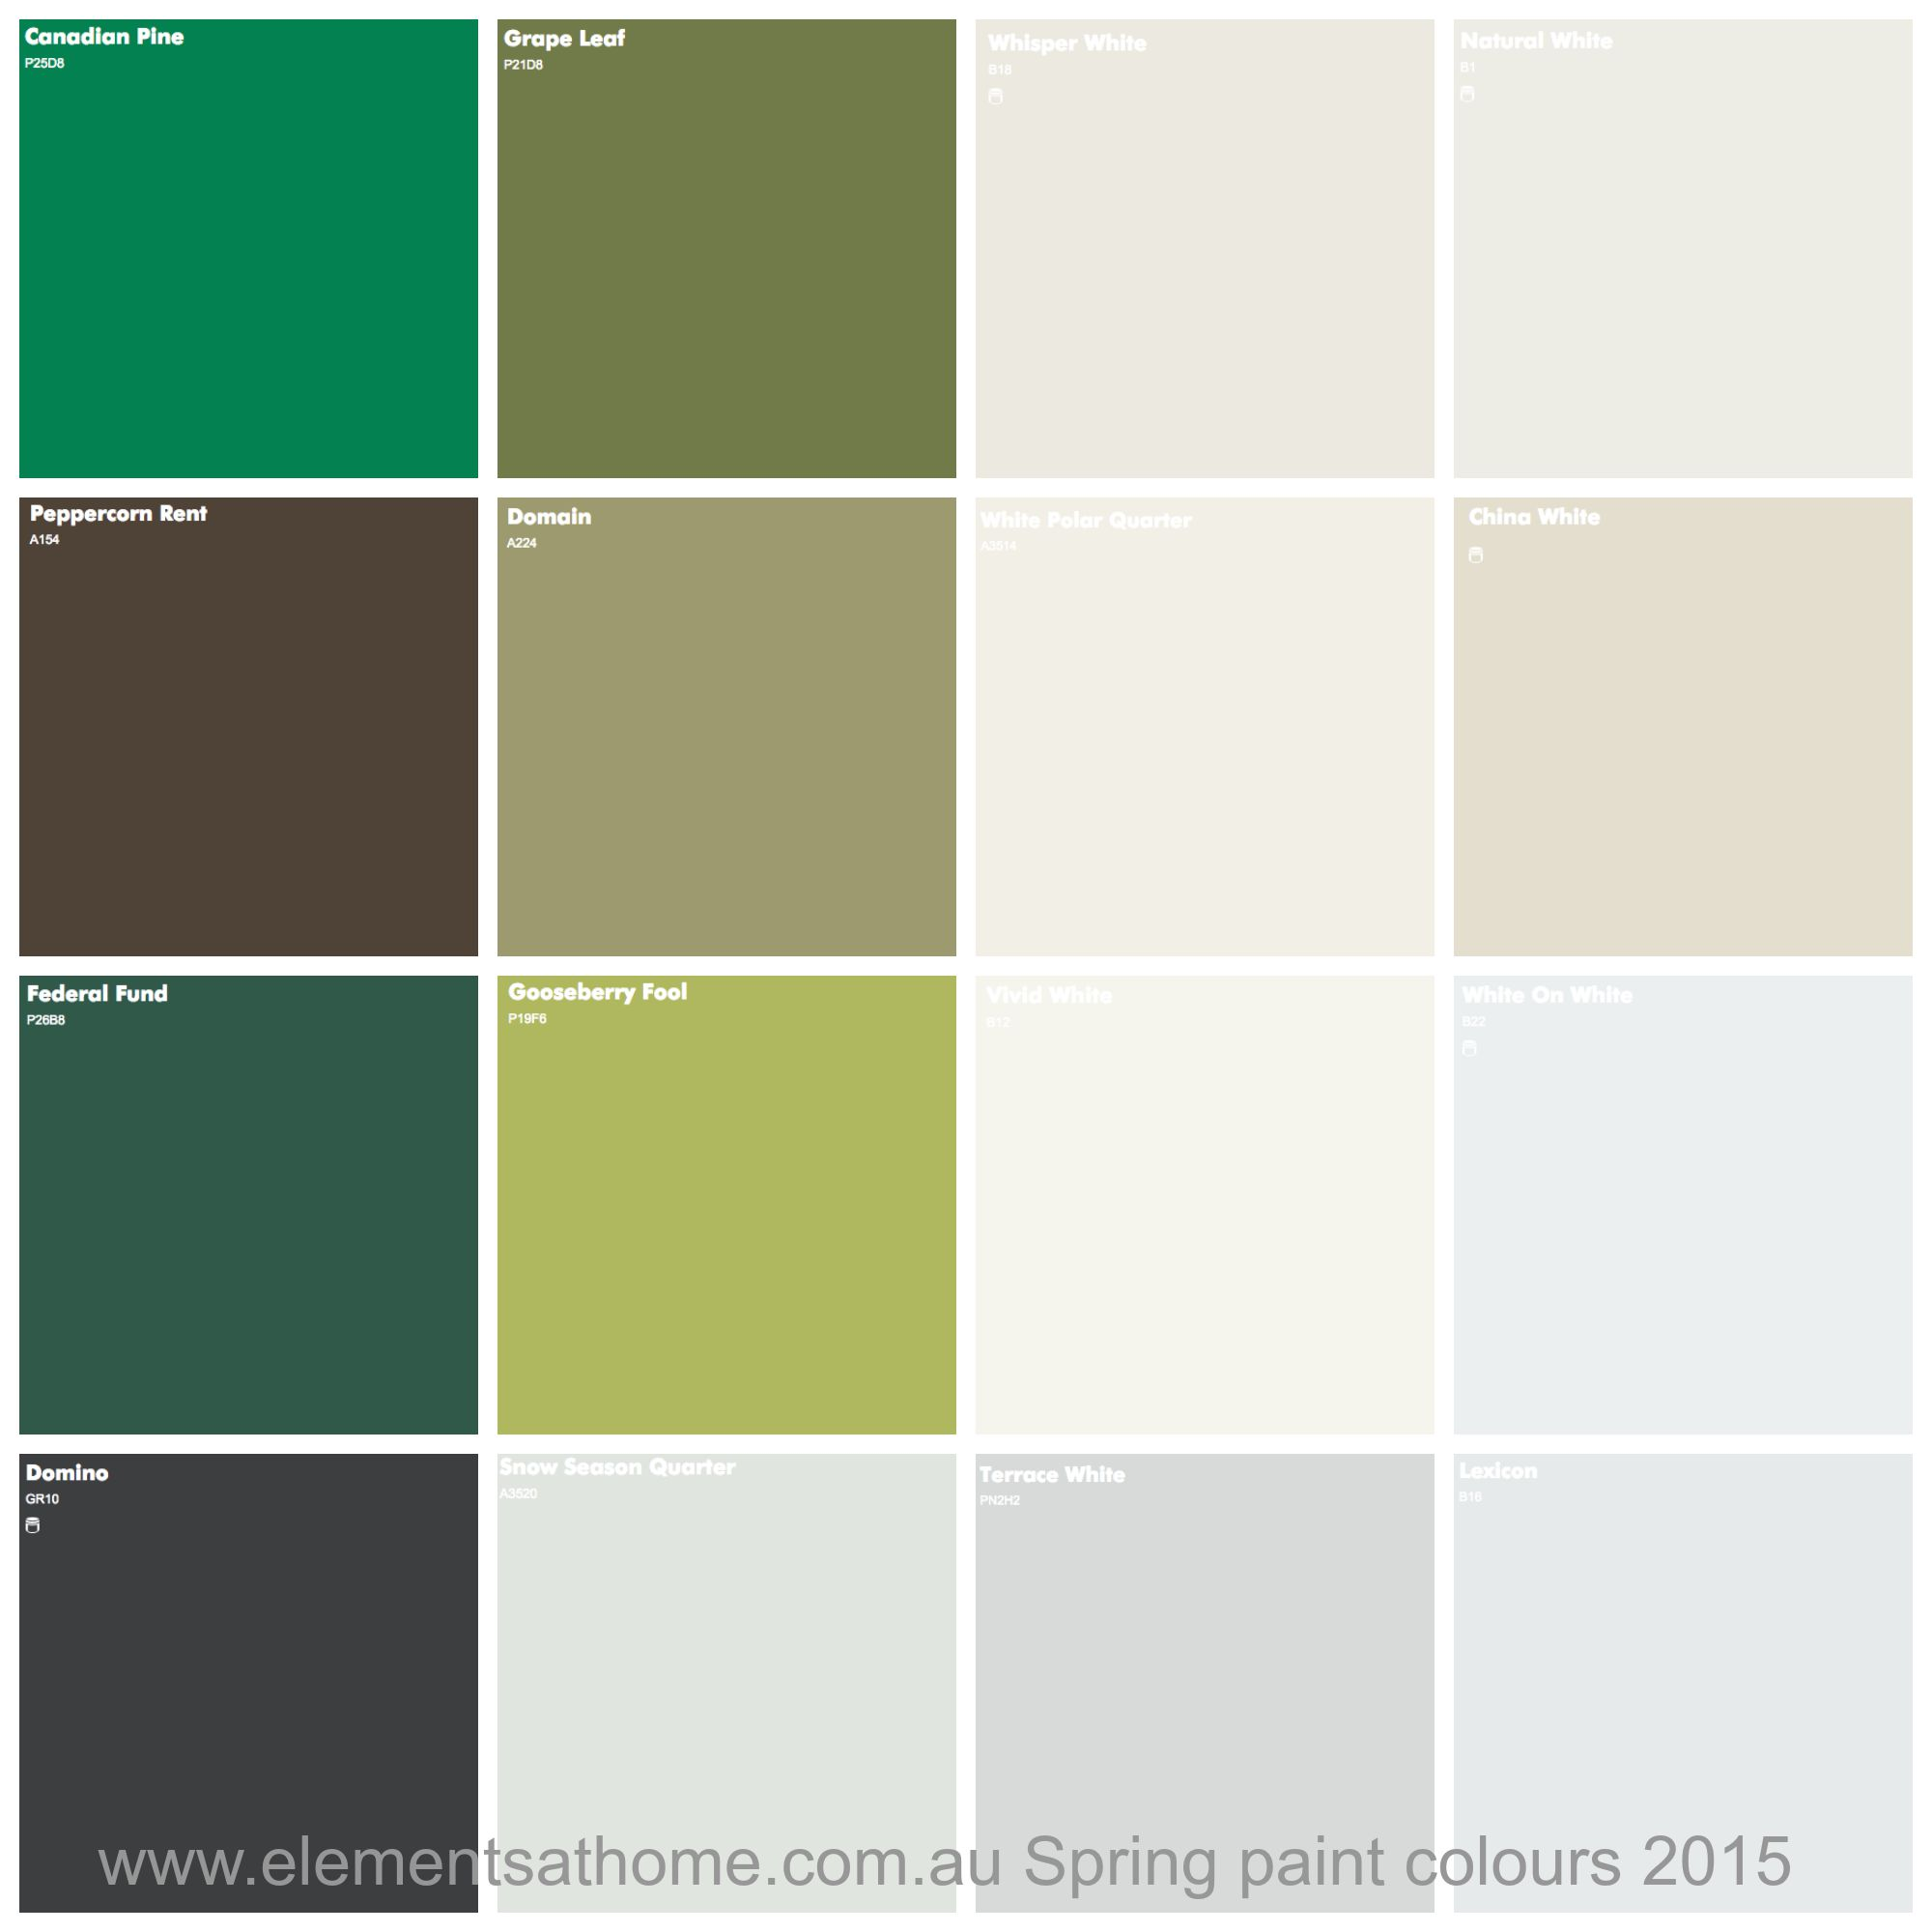 Dulux Kitchen And Bathroom Paint Colour Chart: Dulux Interior Paint Colour Charts